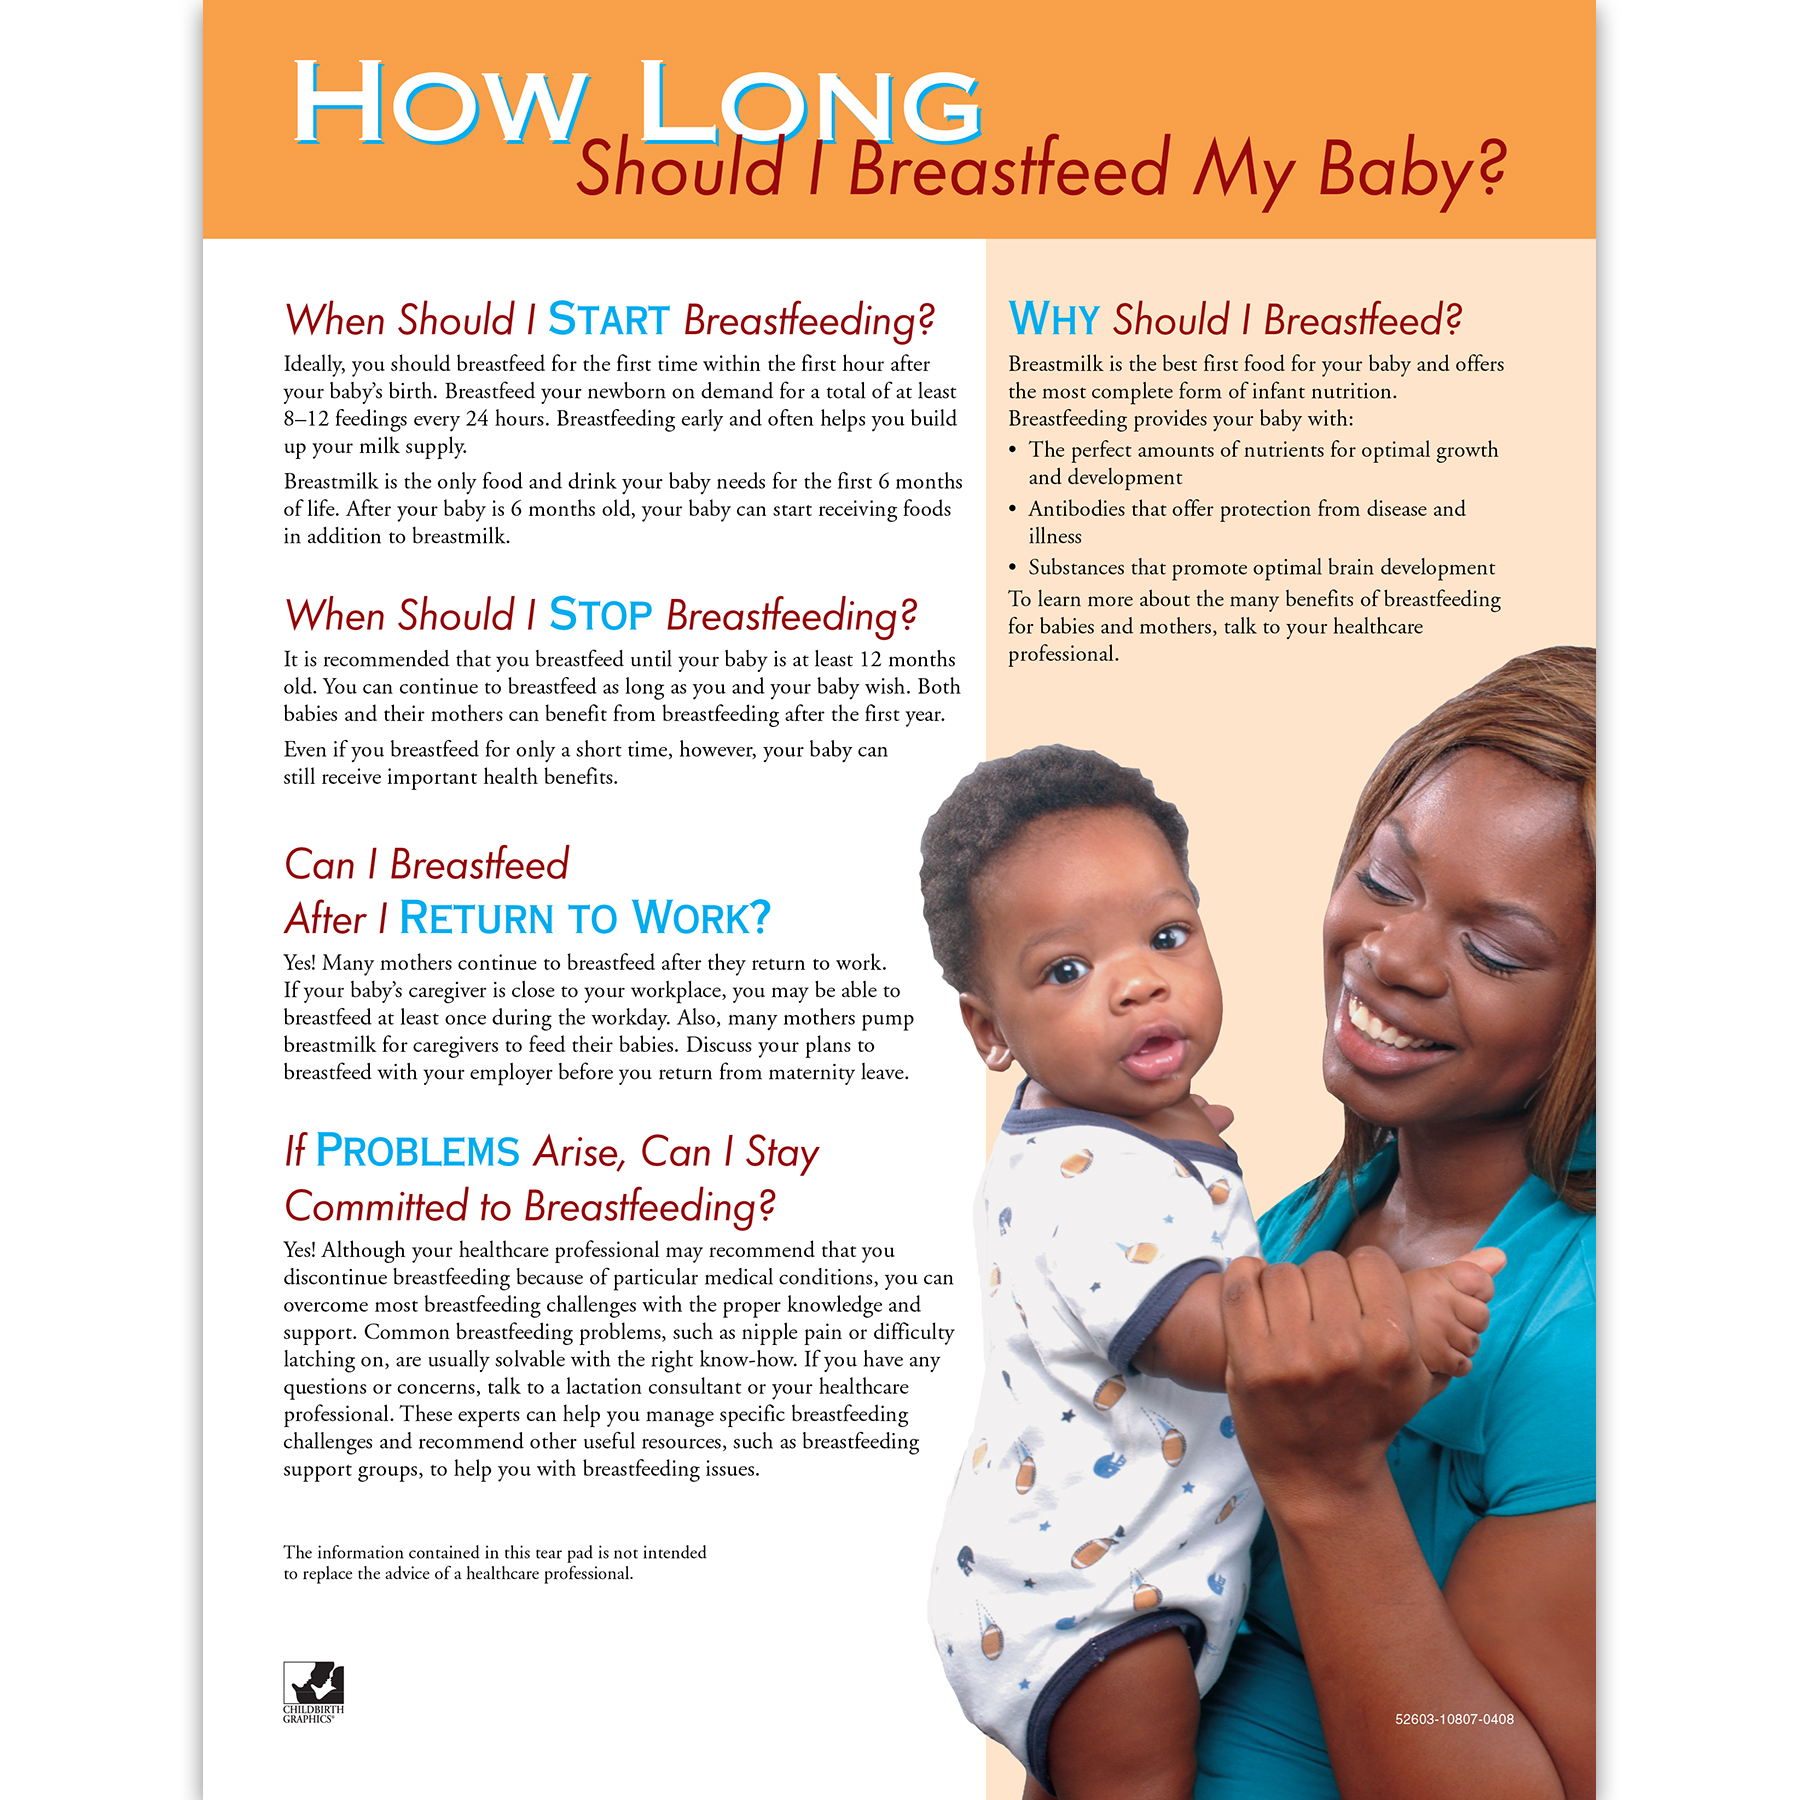 when should i stop breastfeeding my baby on demand